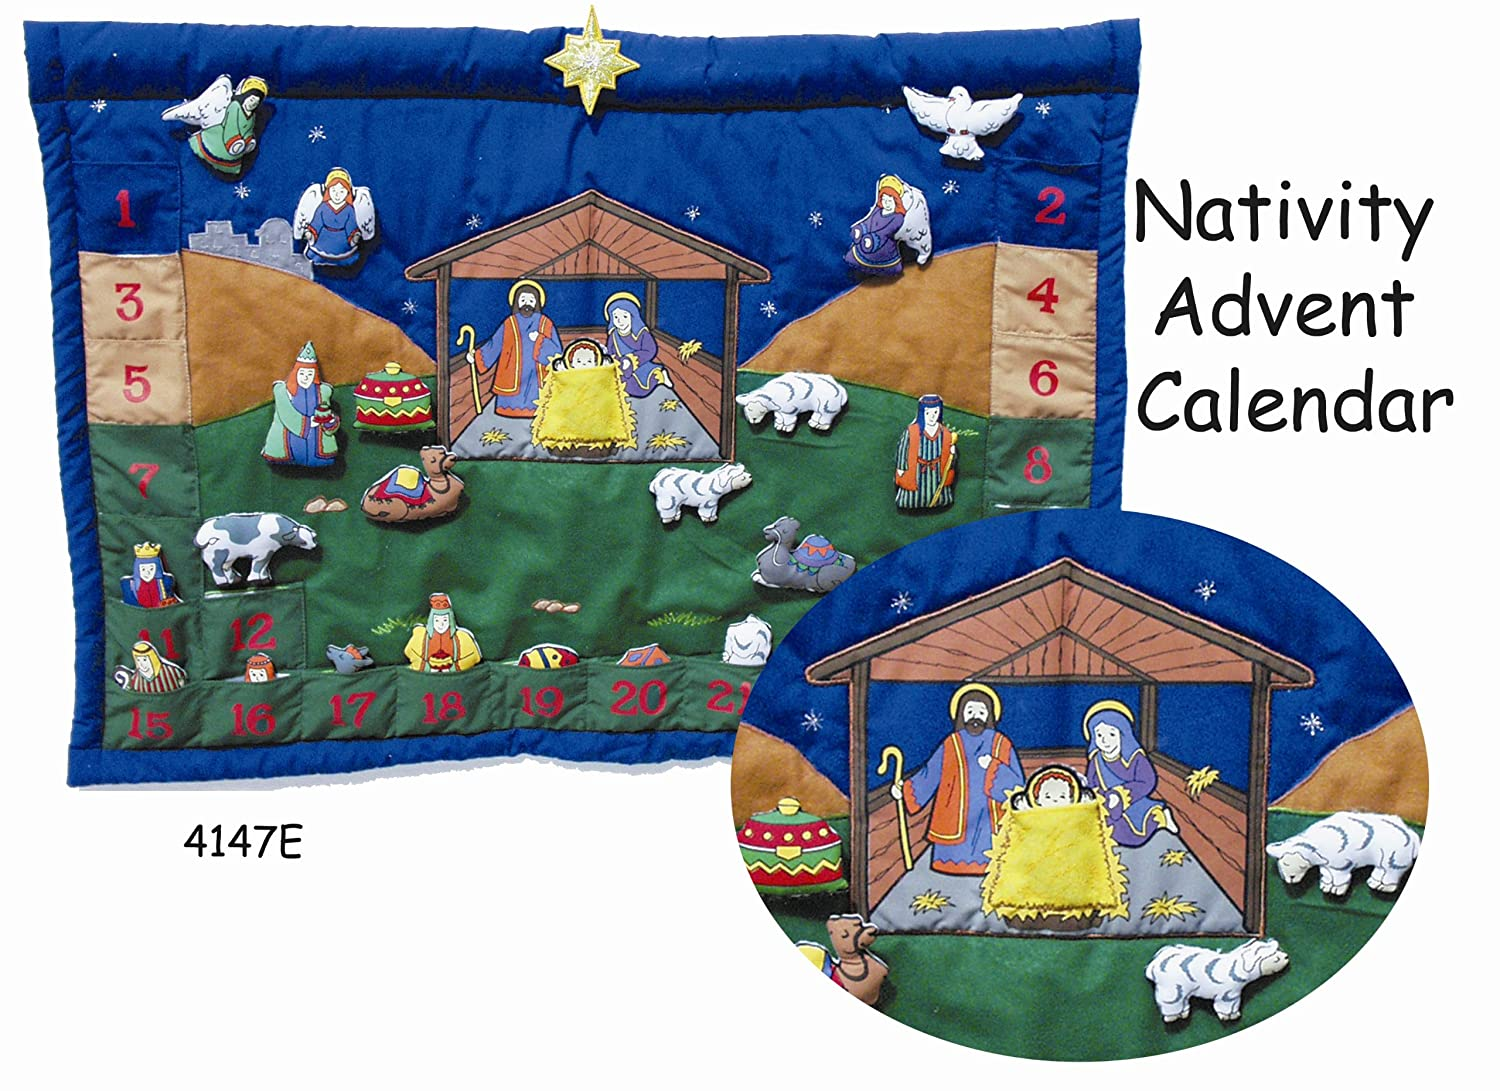 Religious Advent Calendar Ideas : Advent calendar drawing at getdrawings free for personal use